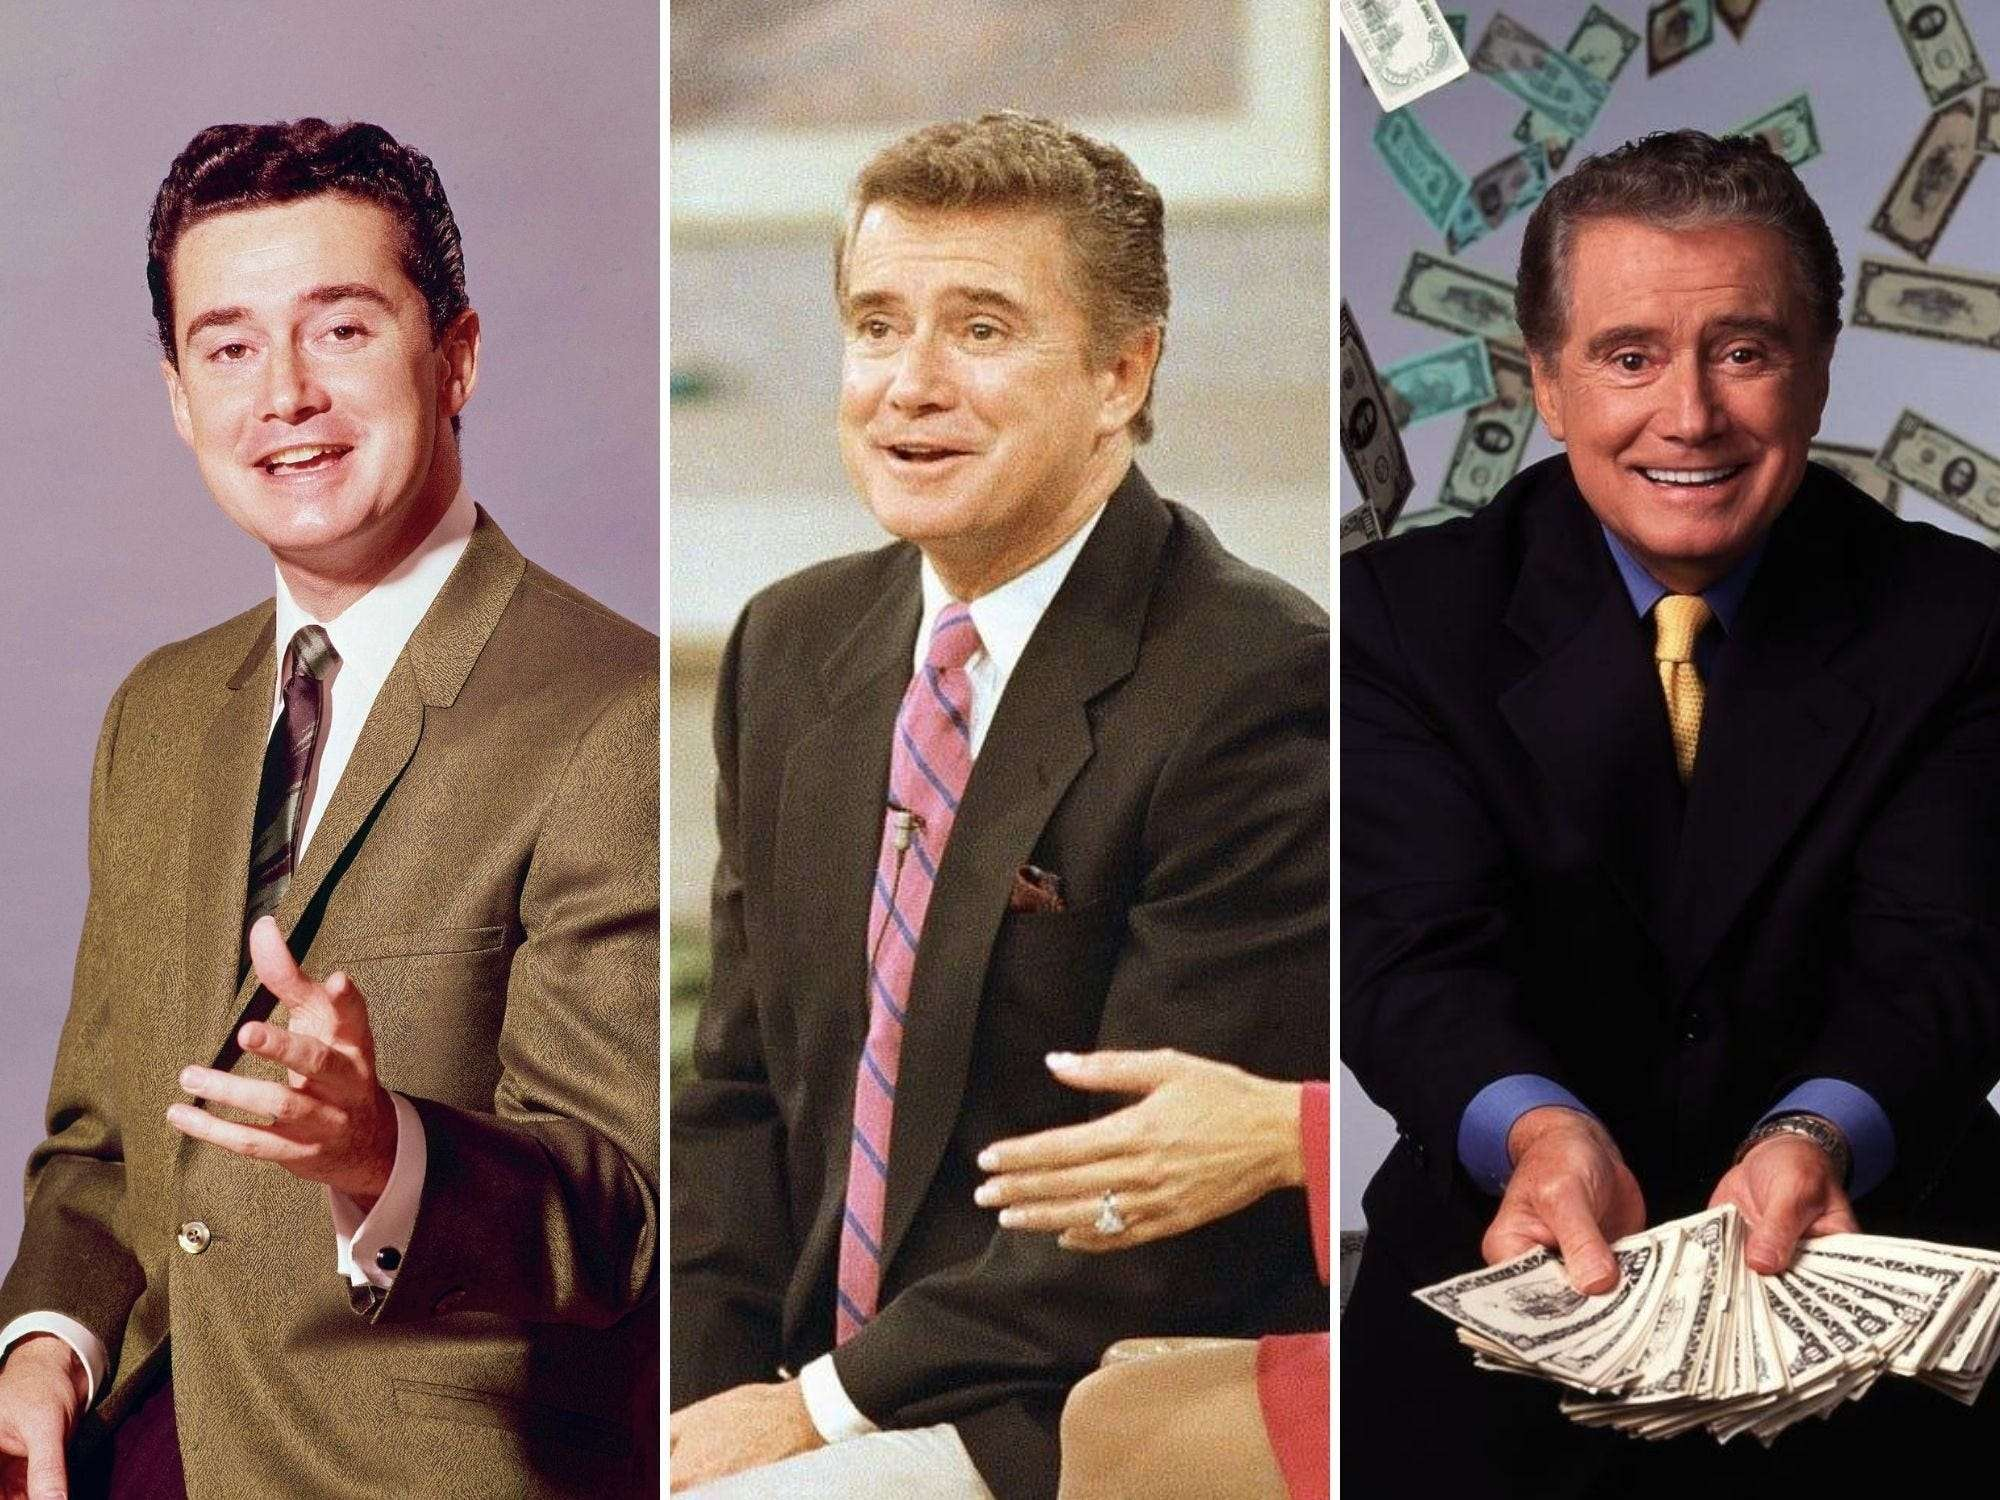 Photos show Regis Philbin's extraordinary life and career - Insider